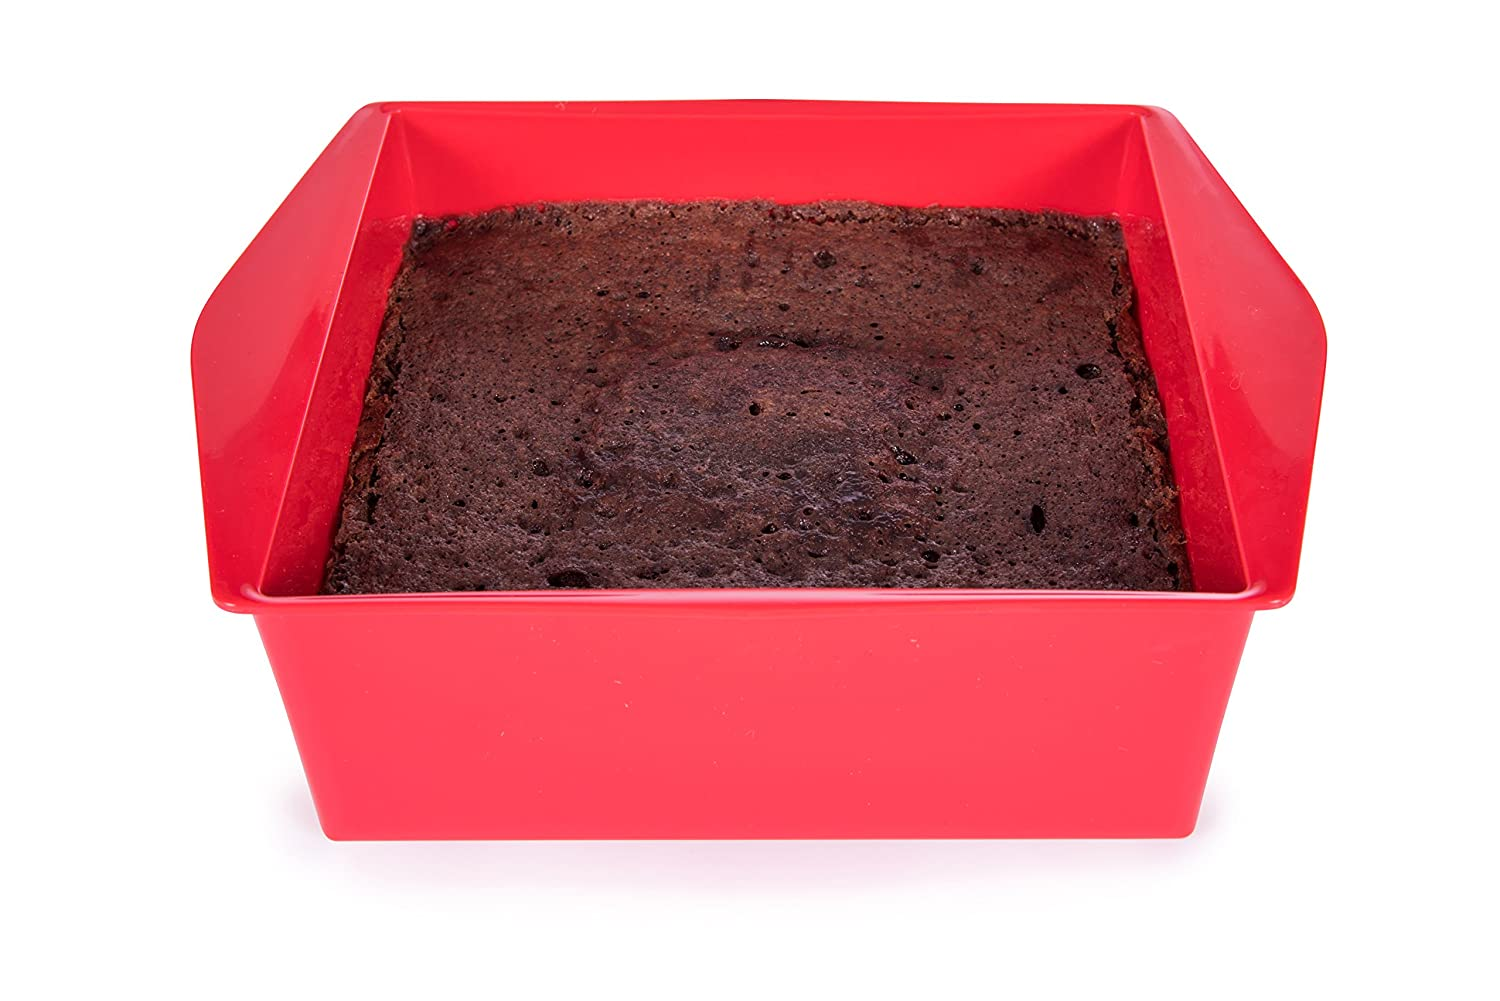 Microwave Desert Brownie Cake Baker (Betty Crocker Red)